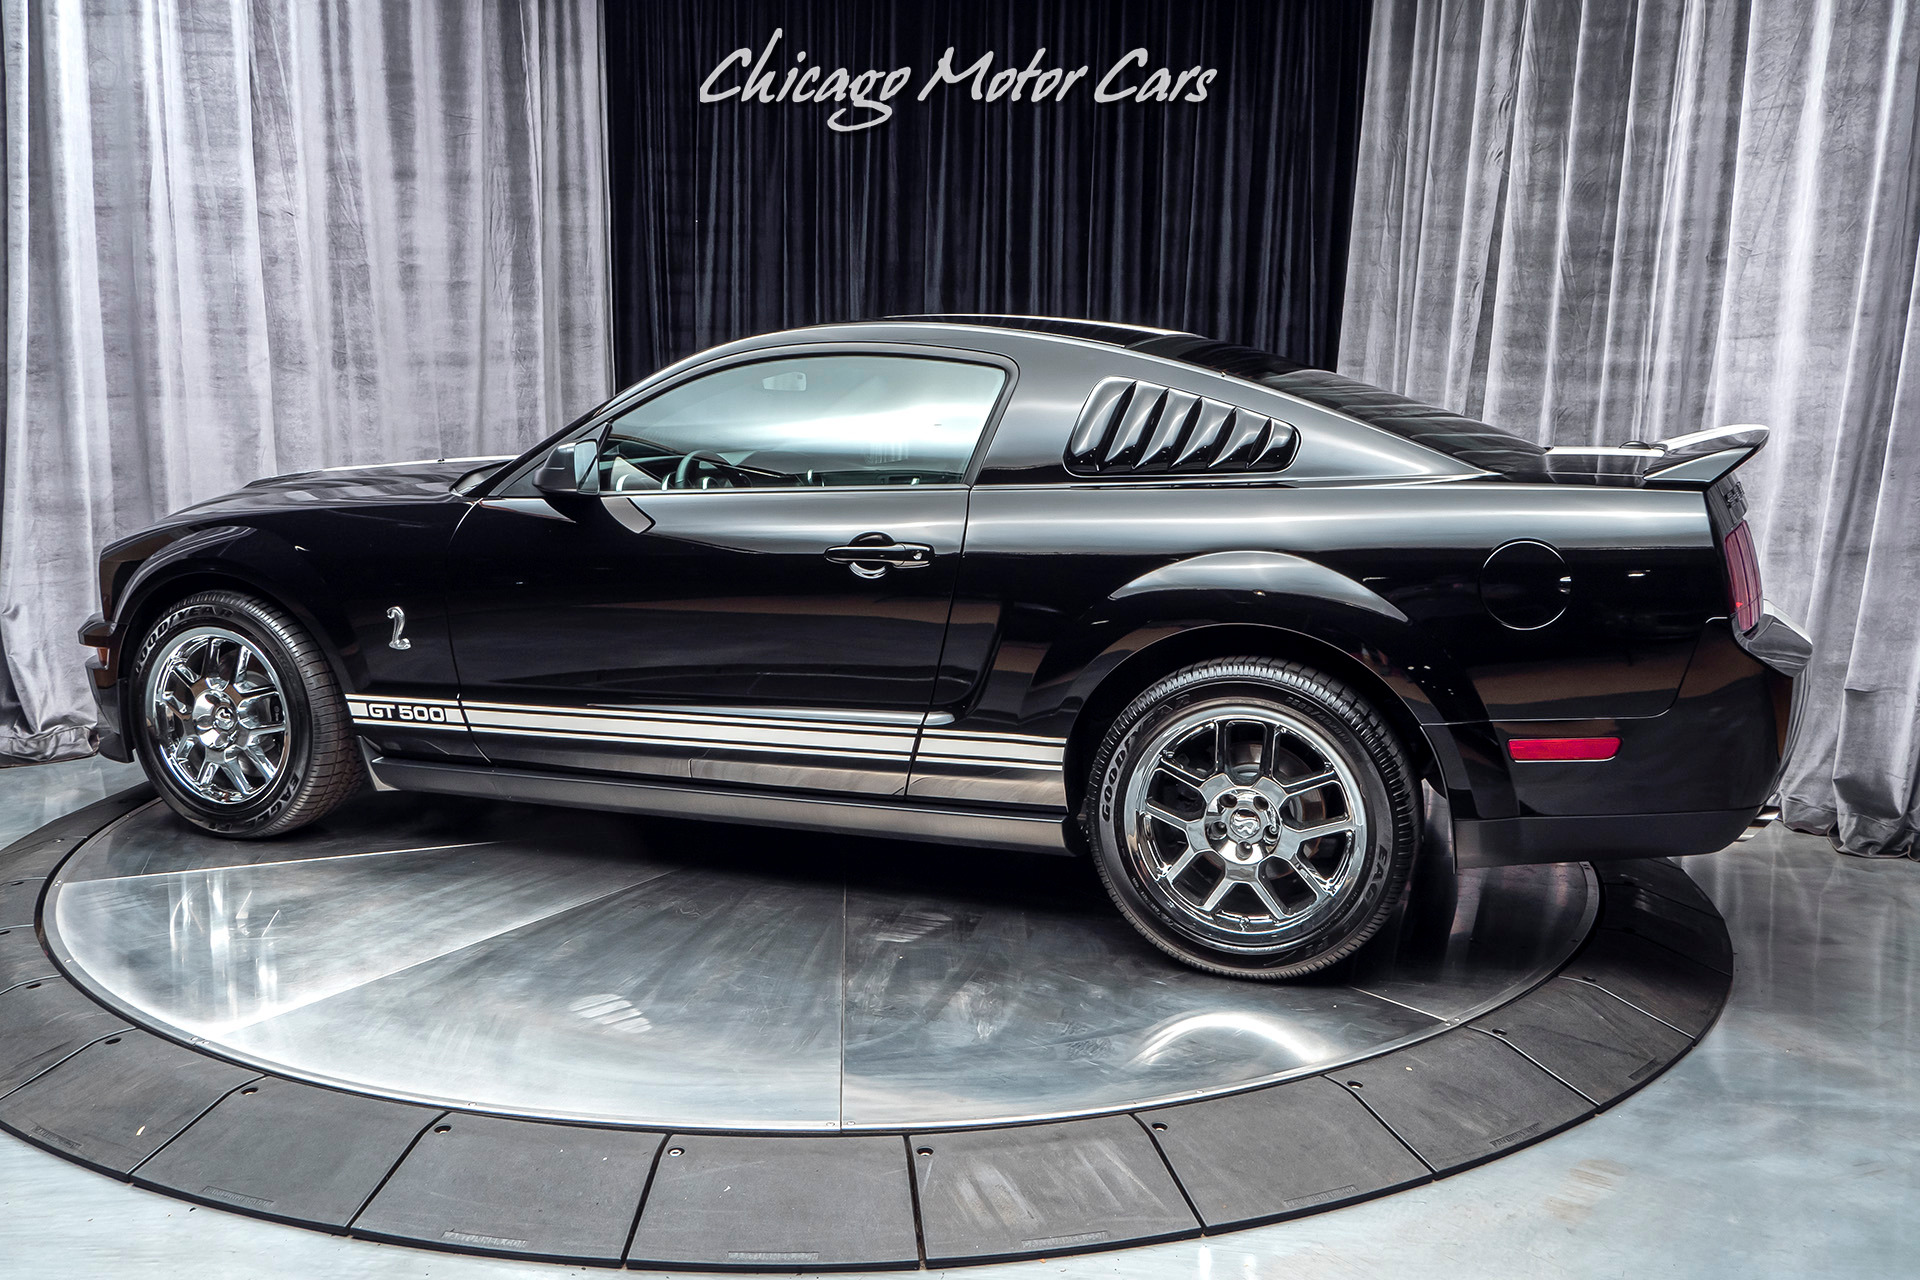 Used-2007-Ford-Shelby-GT500-Coupe-COLLECTORS-QUALITY-ONLY-431-MILES